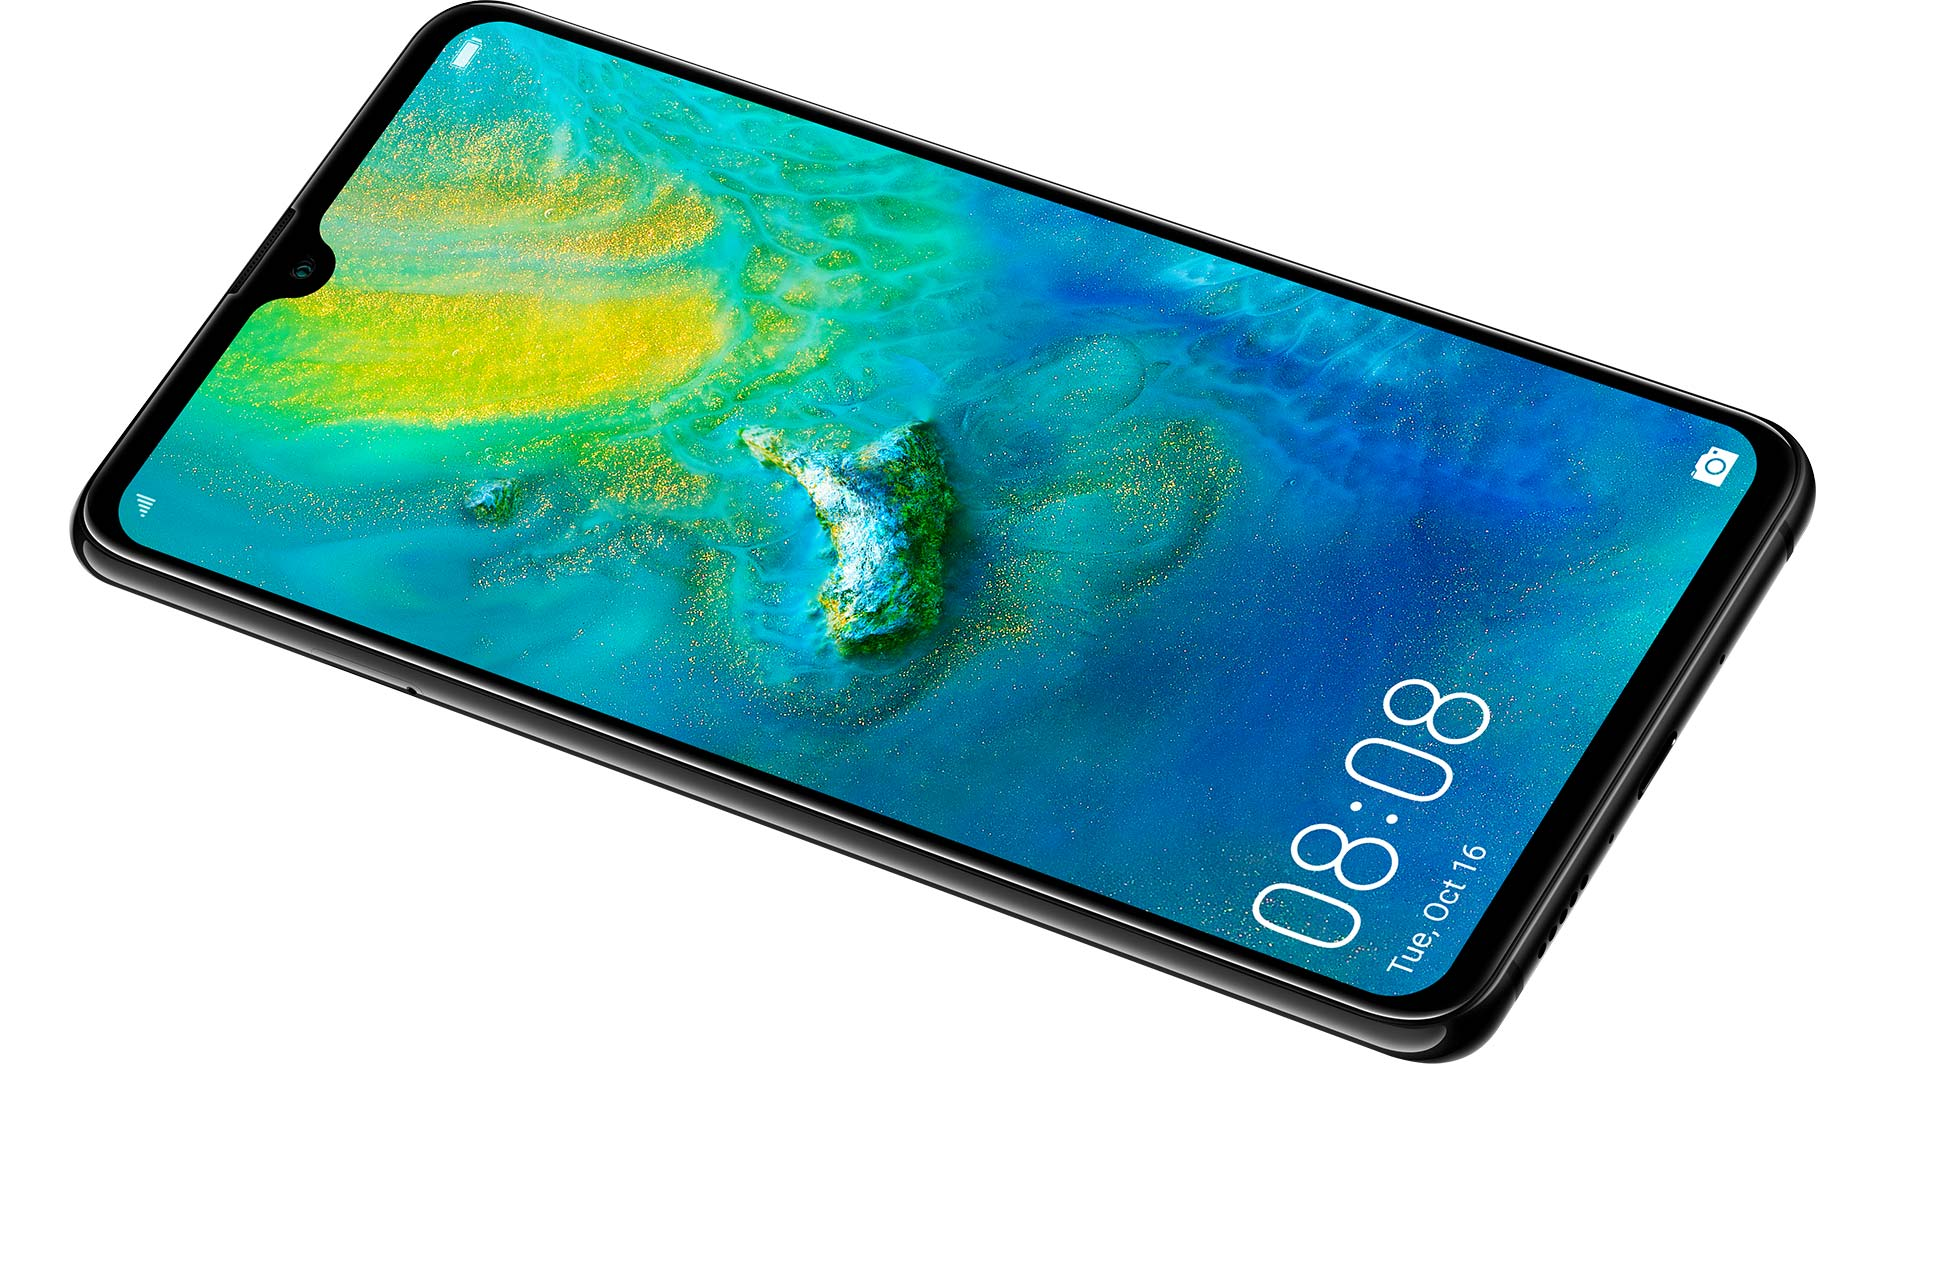 Huawei Mate 20 & Mate 20 Pro officially launched